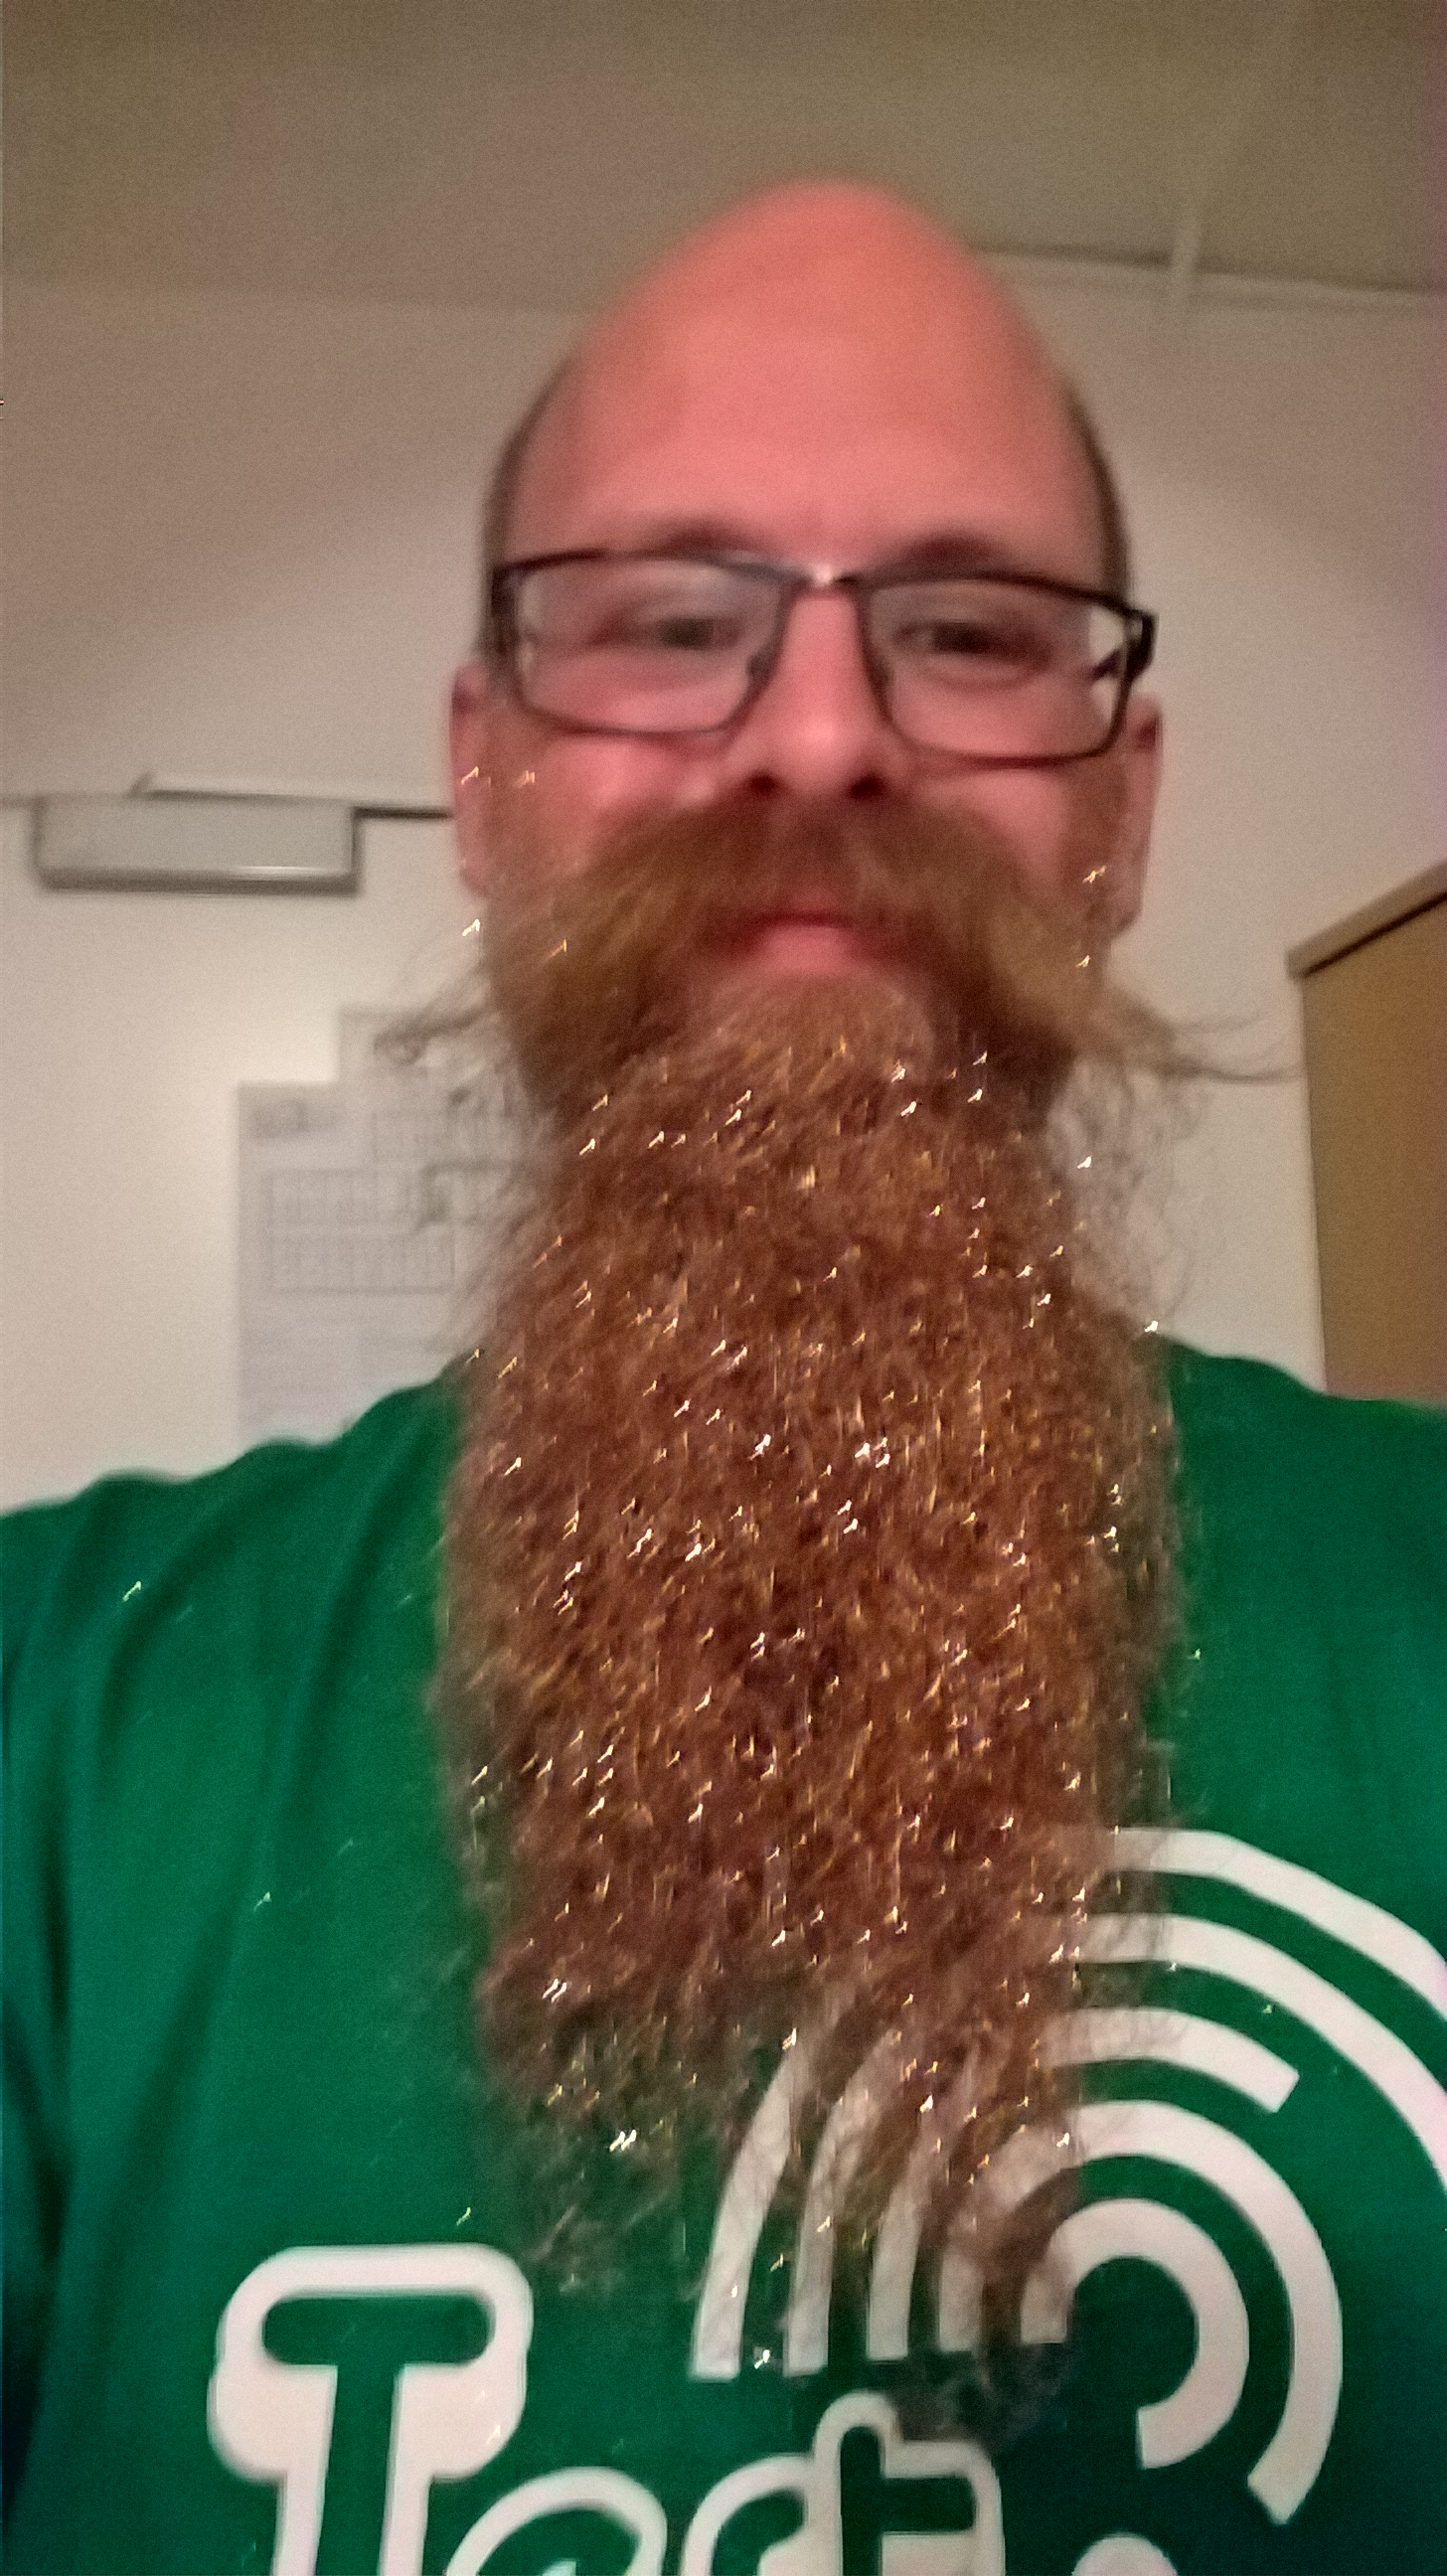 The glitter beard in Slovenia. even the next day there was glitter on many speakers